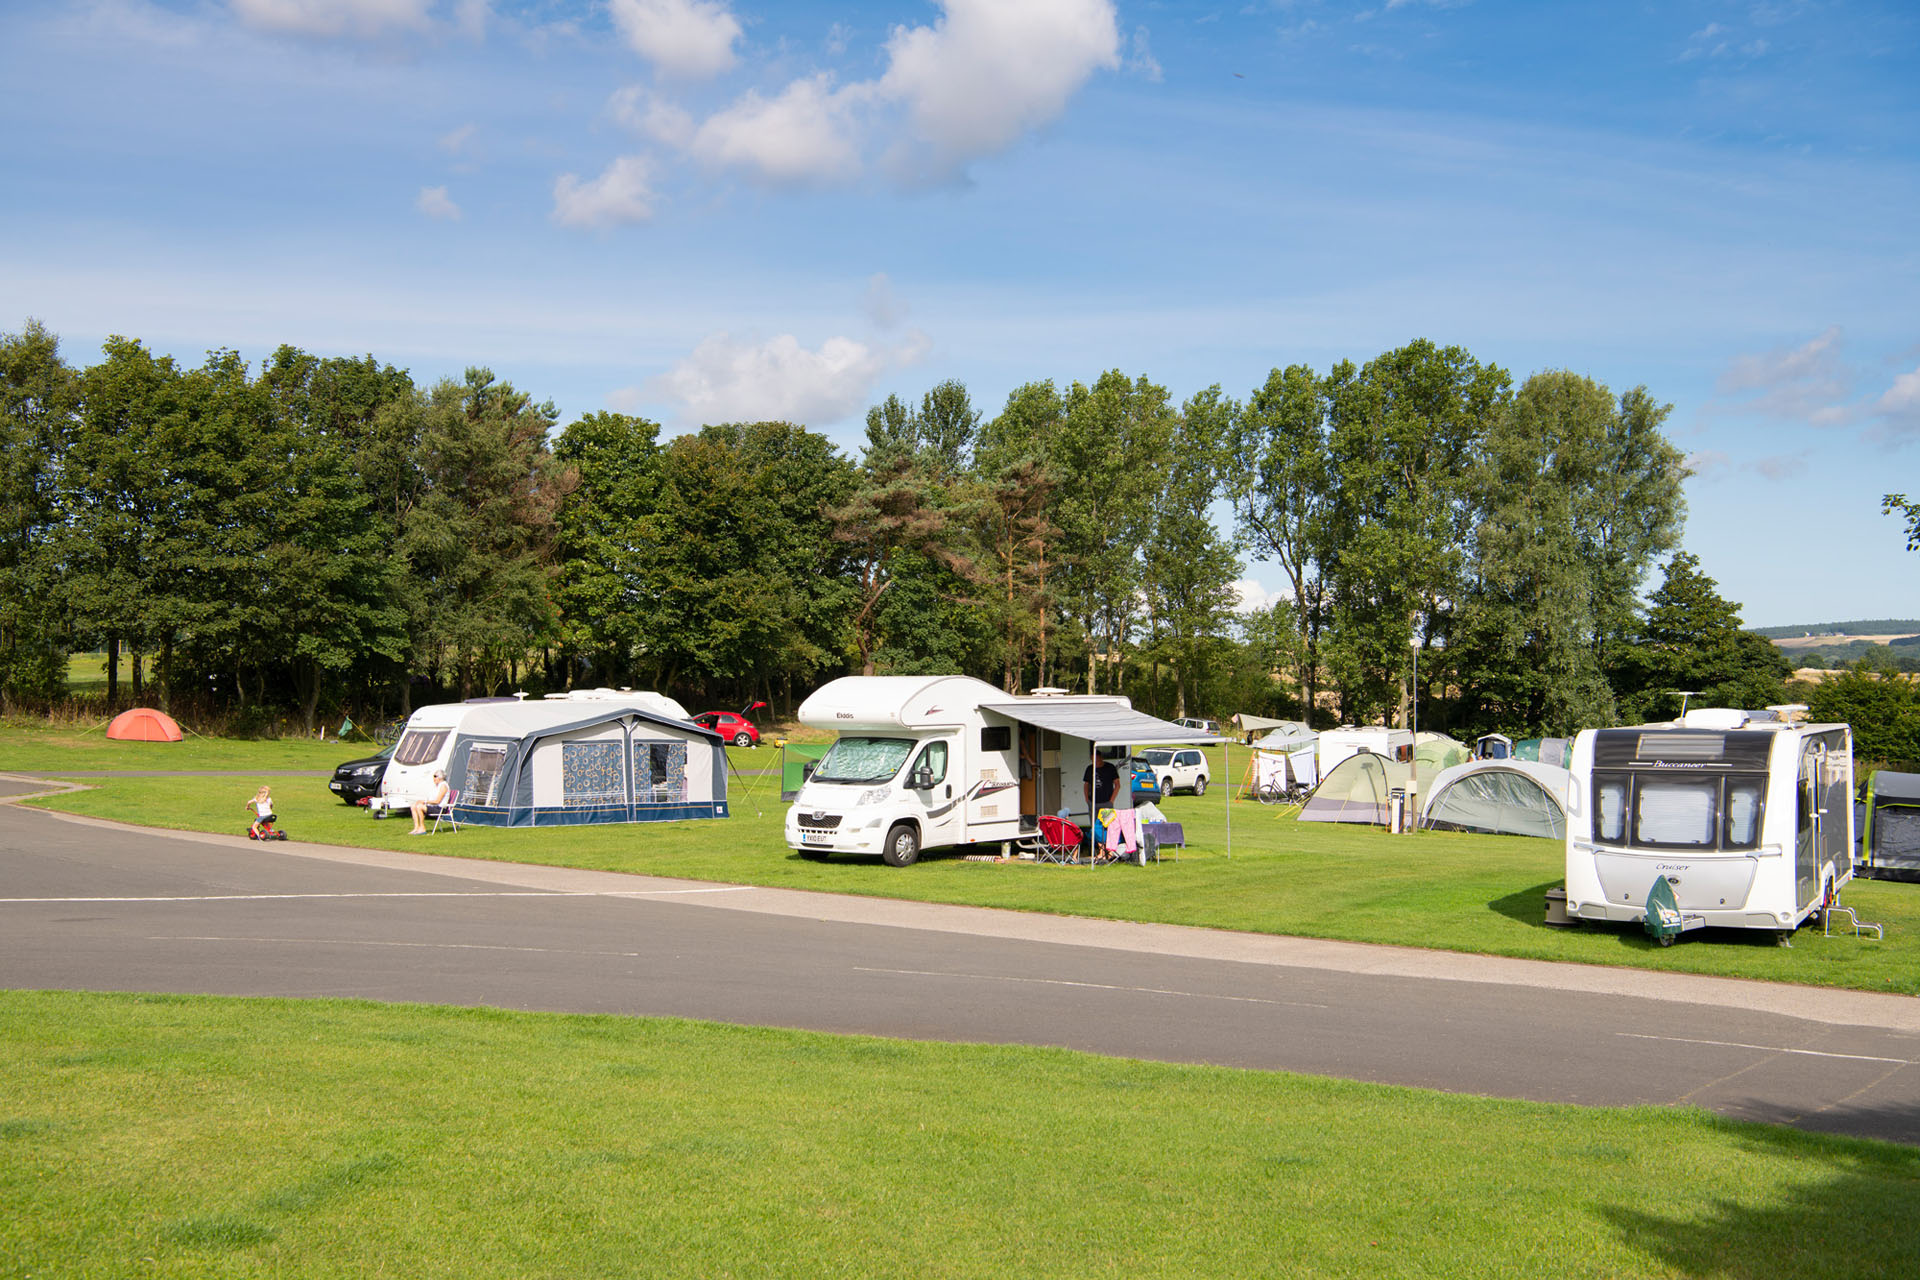 Jedburgh - Camping and Caravanning Club Site - The Camping